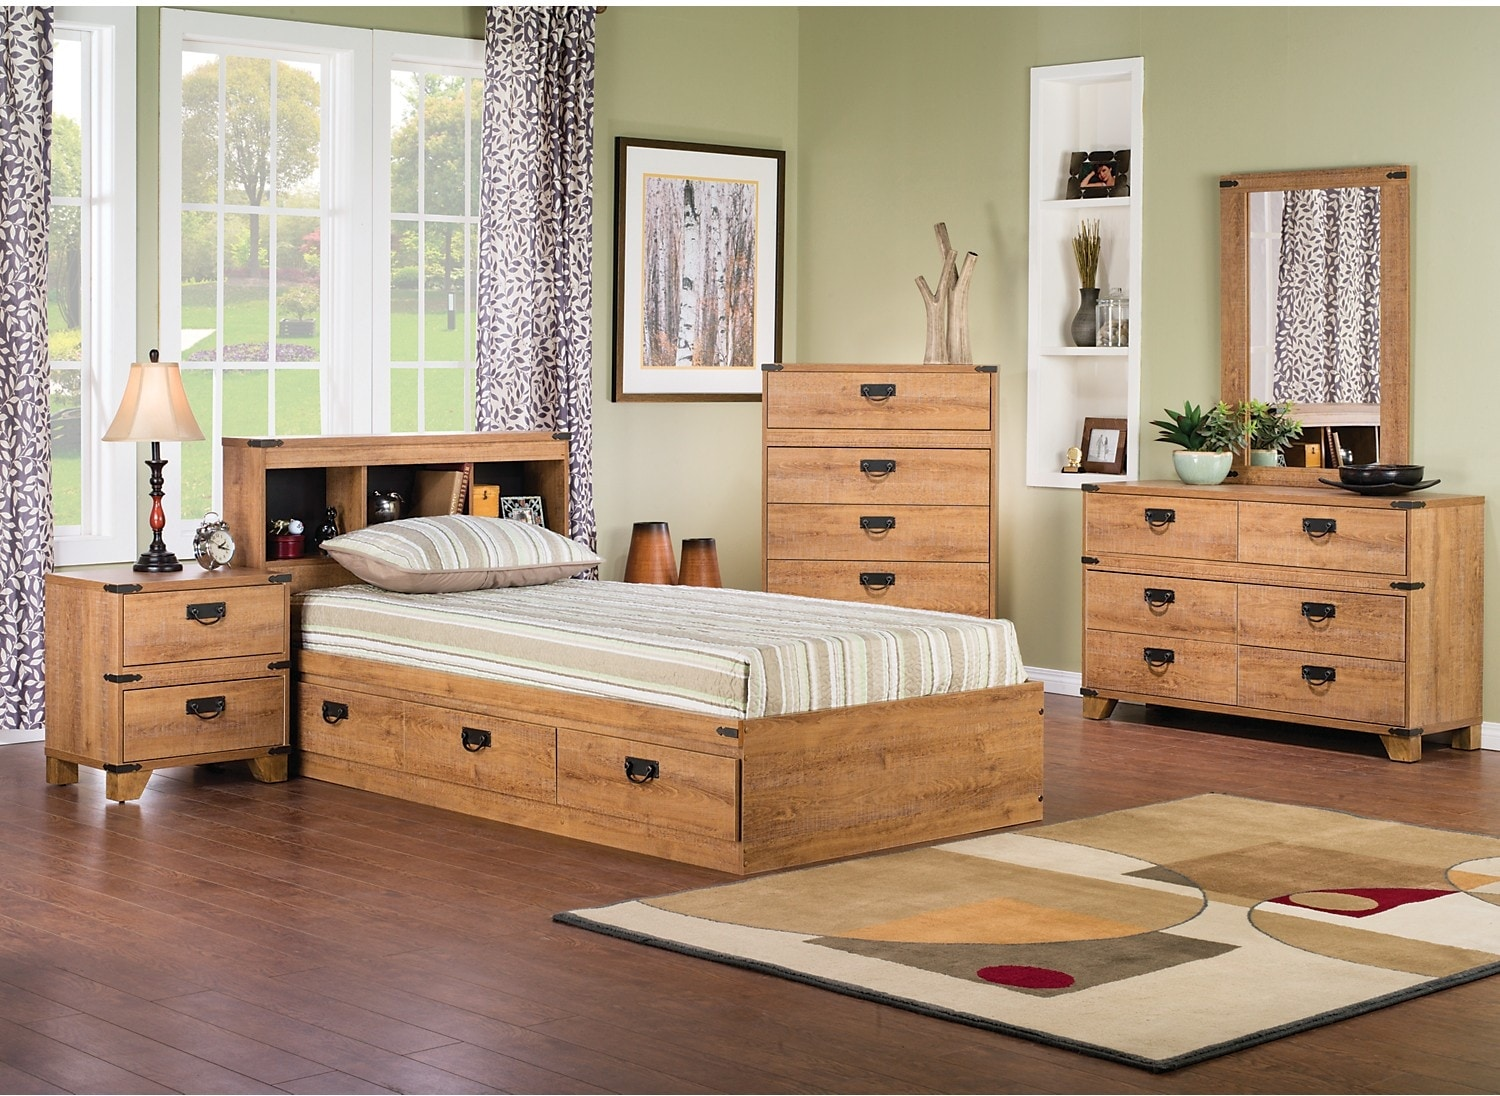 Driftwood 4-Piece Mates Bedroom Package